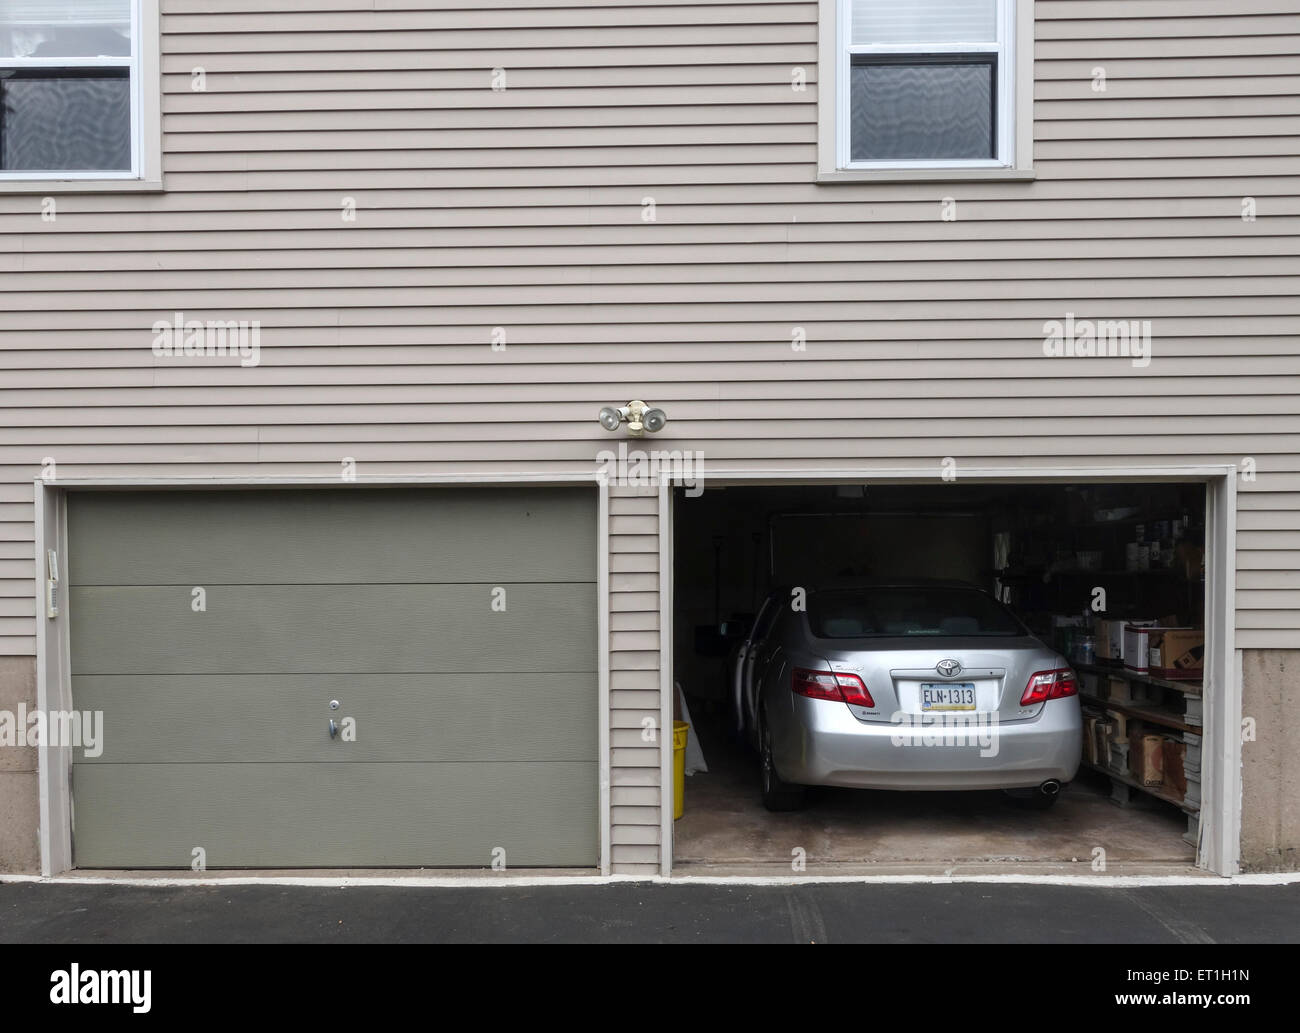 g garage doors service track christian family door off with dfw